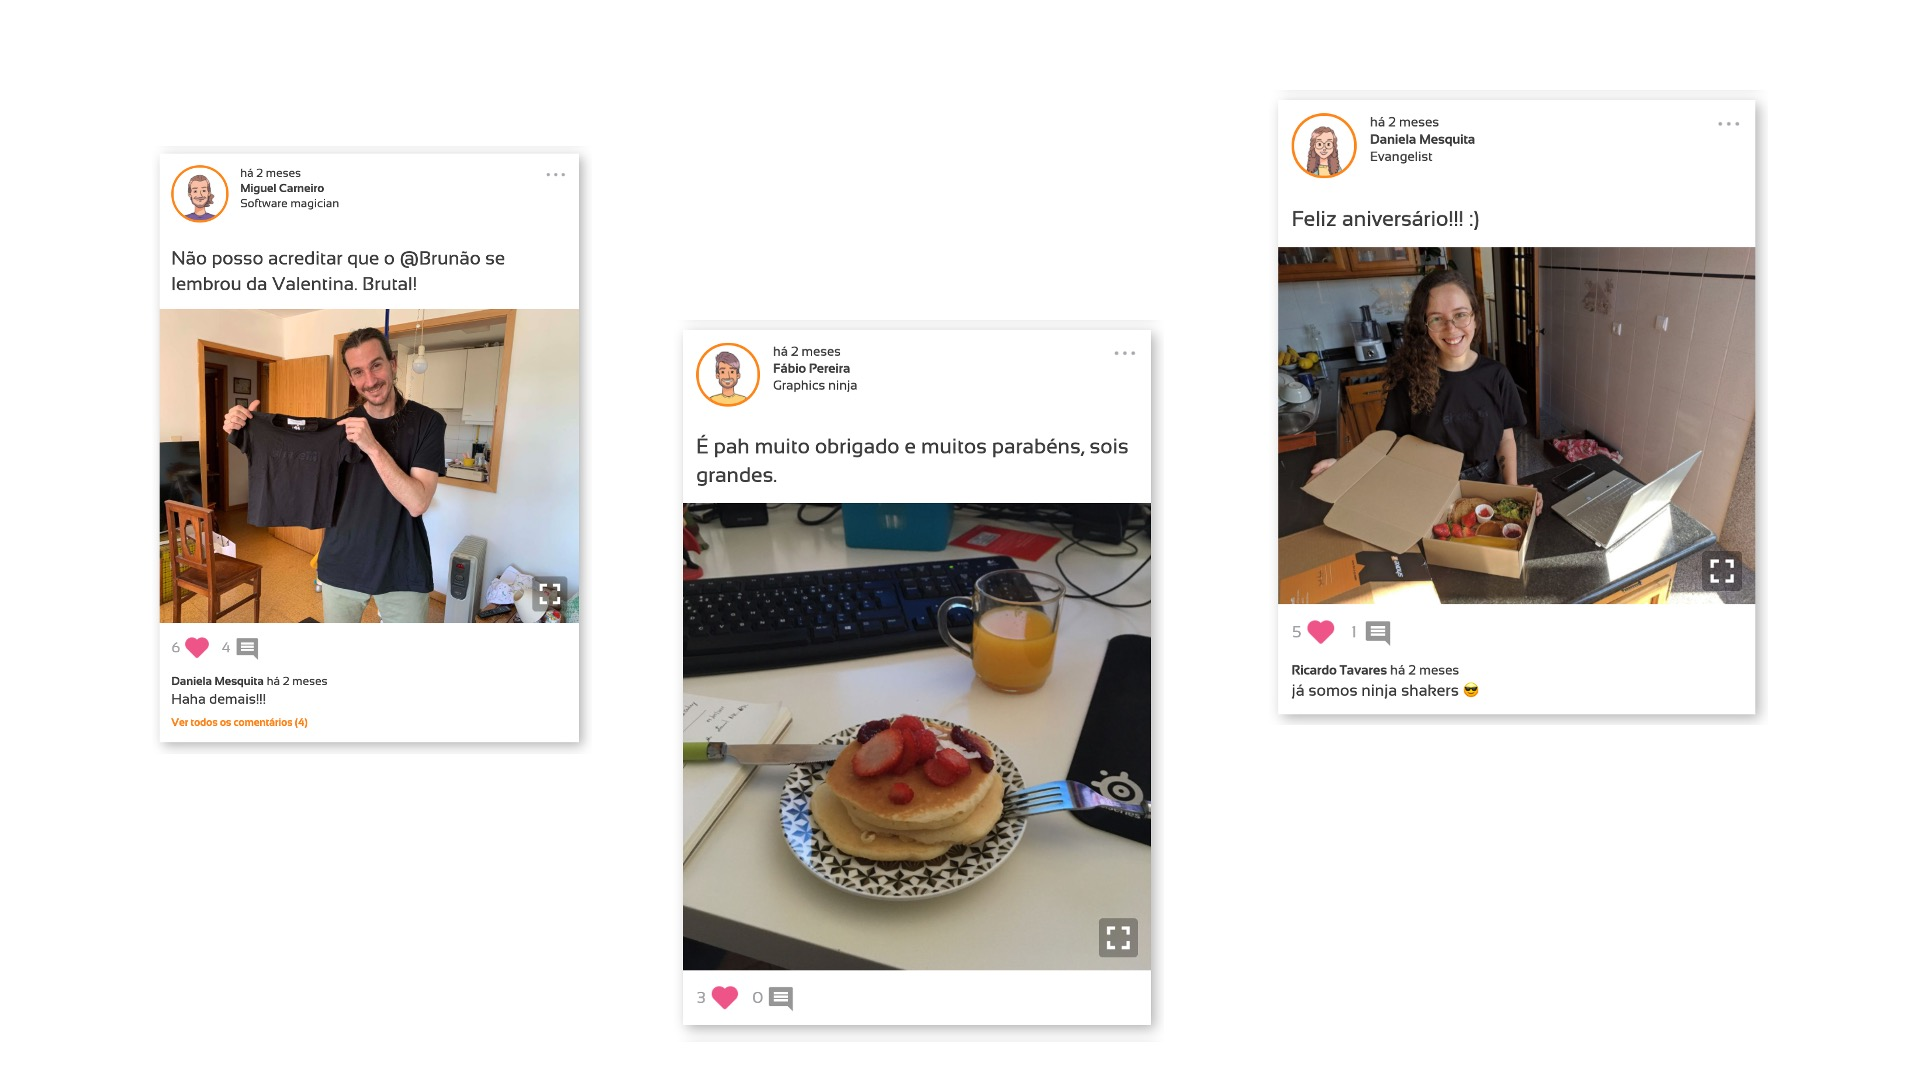 Sharing is caring - People engaged by sharing pictures and videos throughout the day